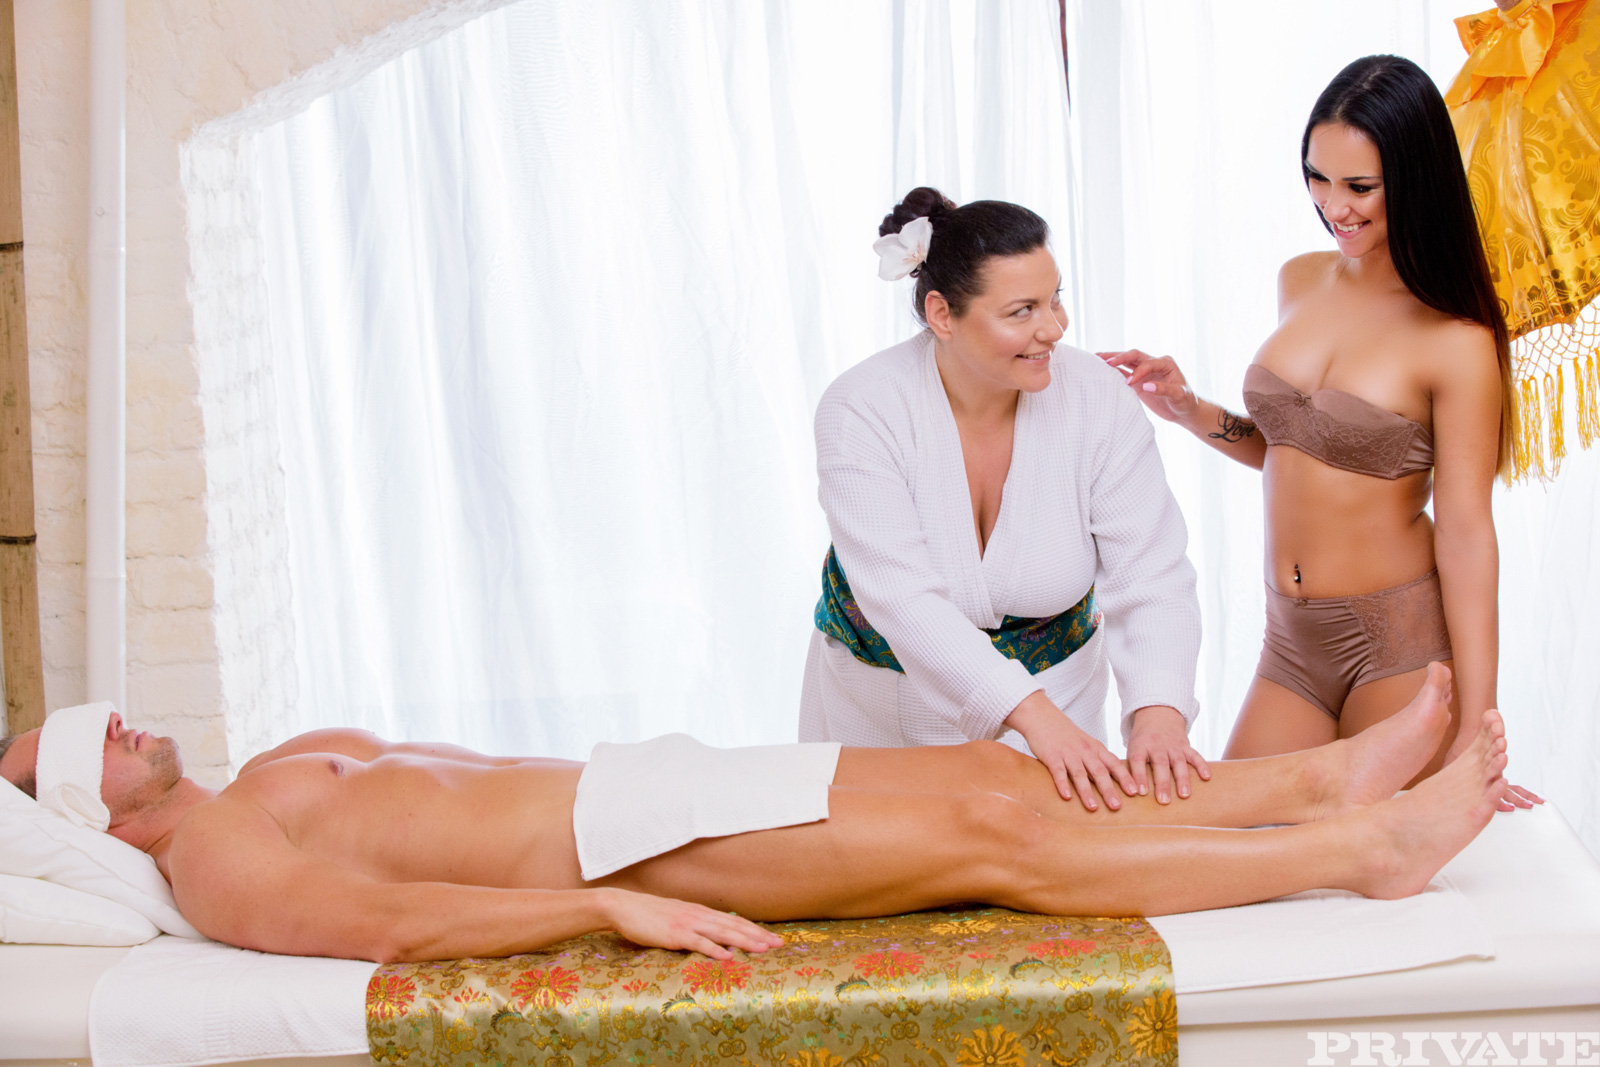 Her massage turns into some hardcore anal fucking 5